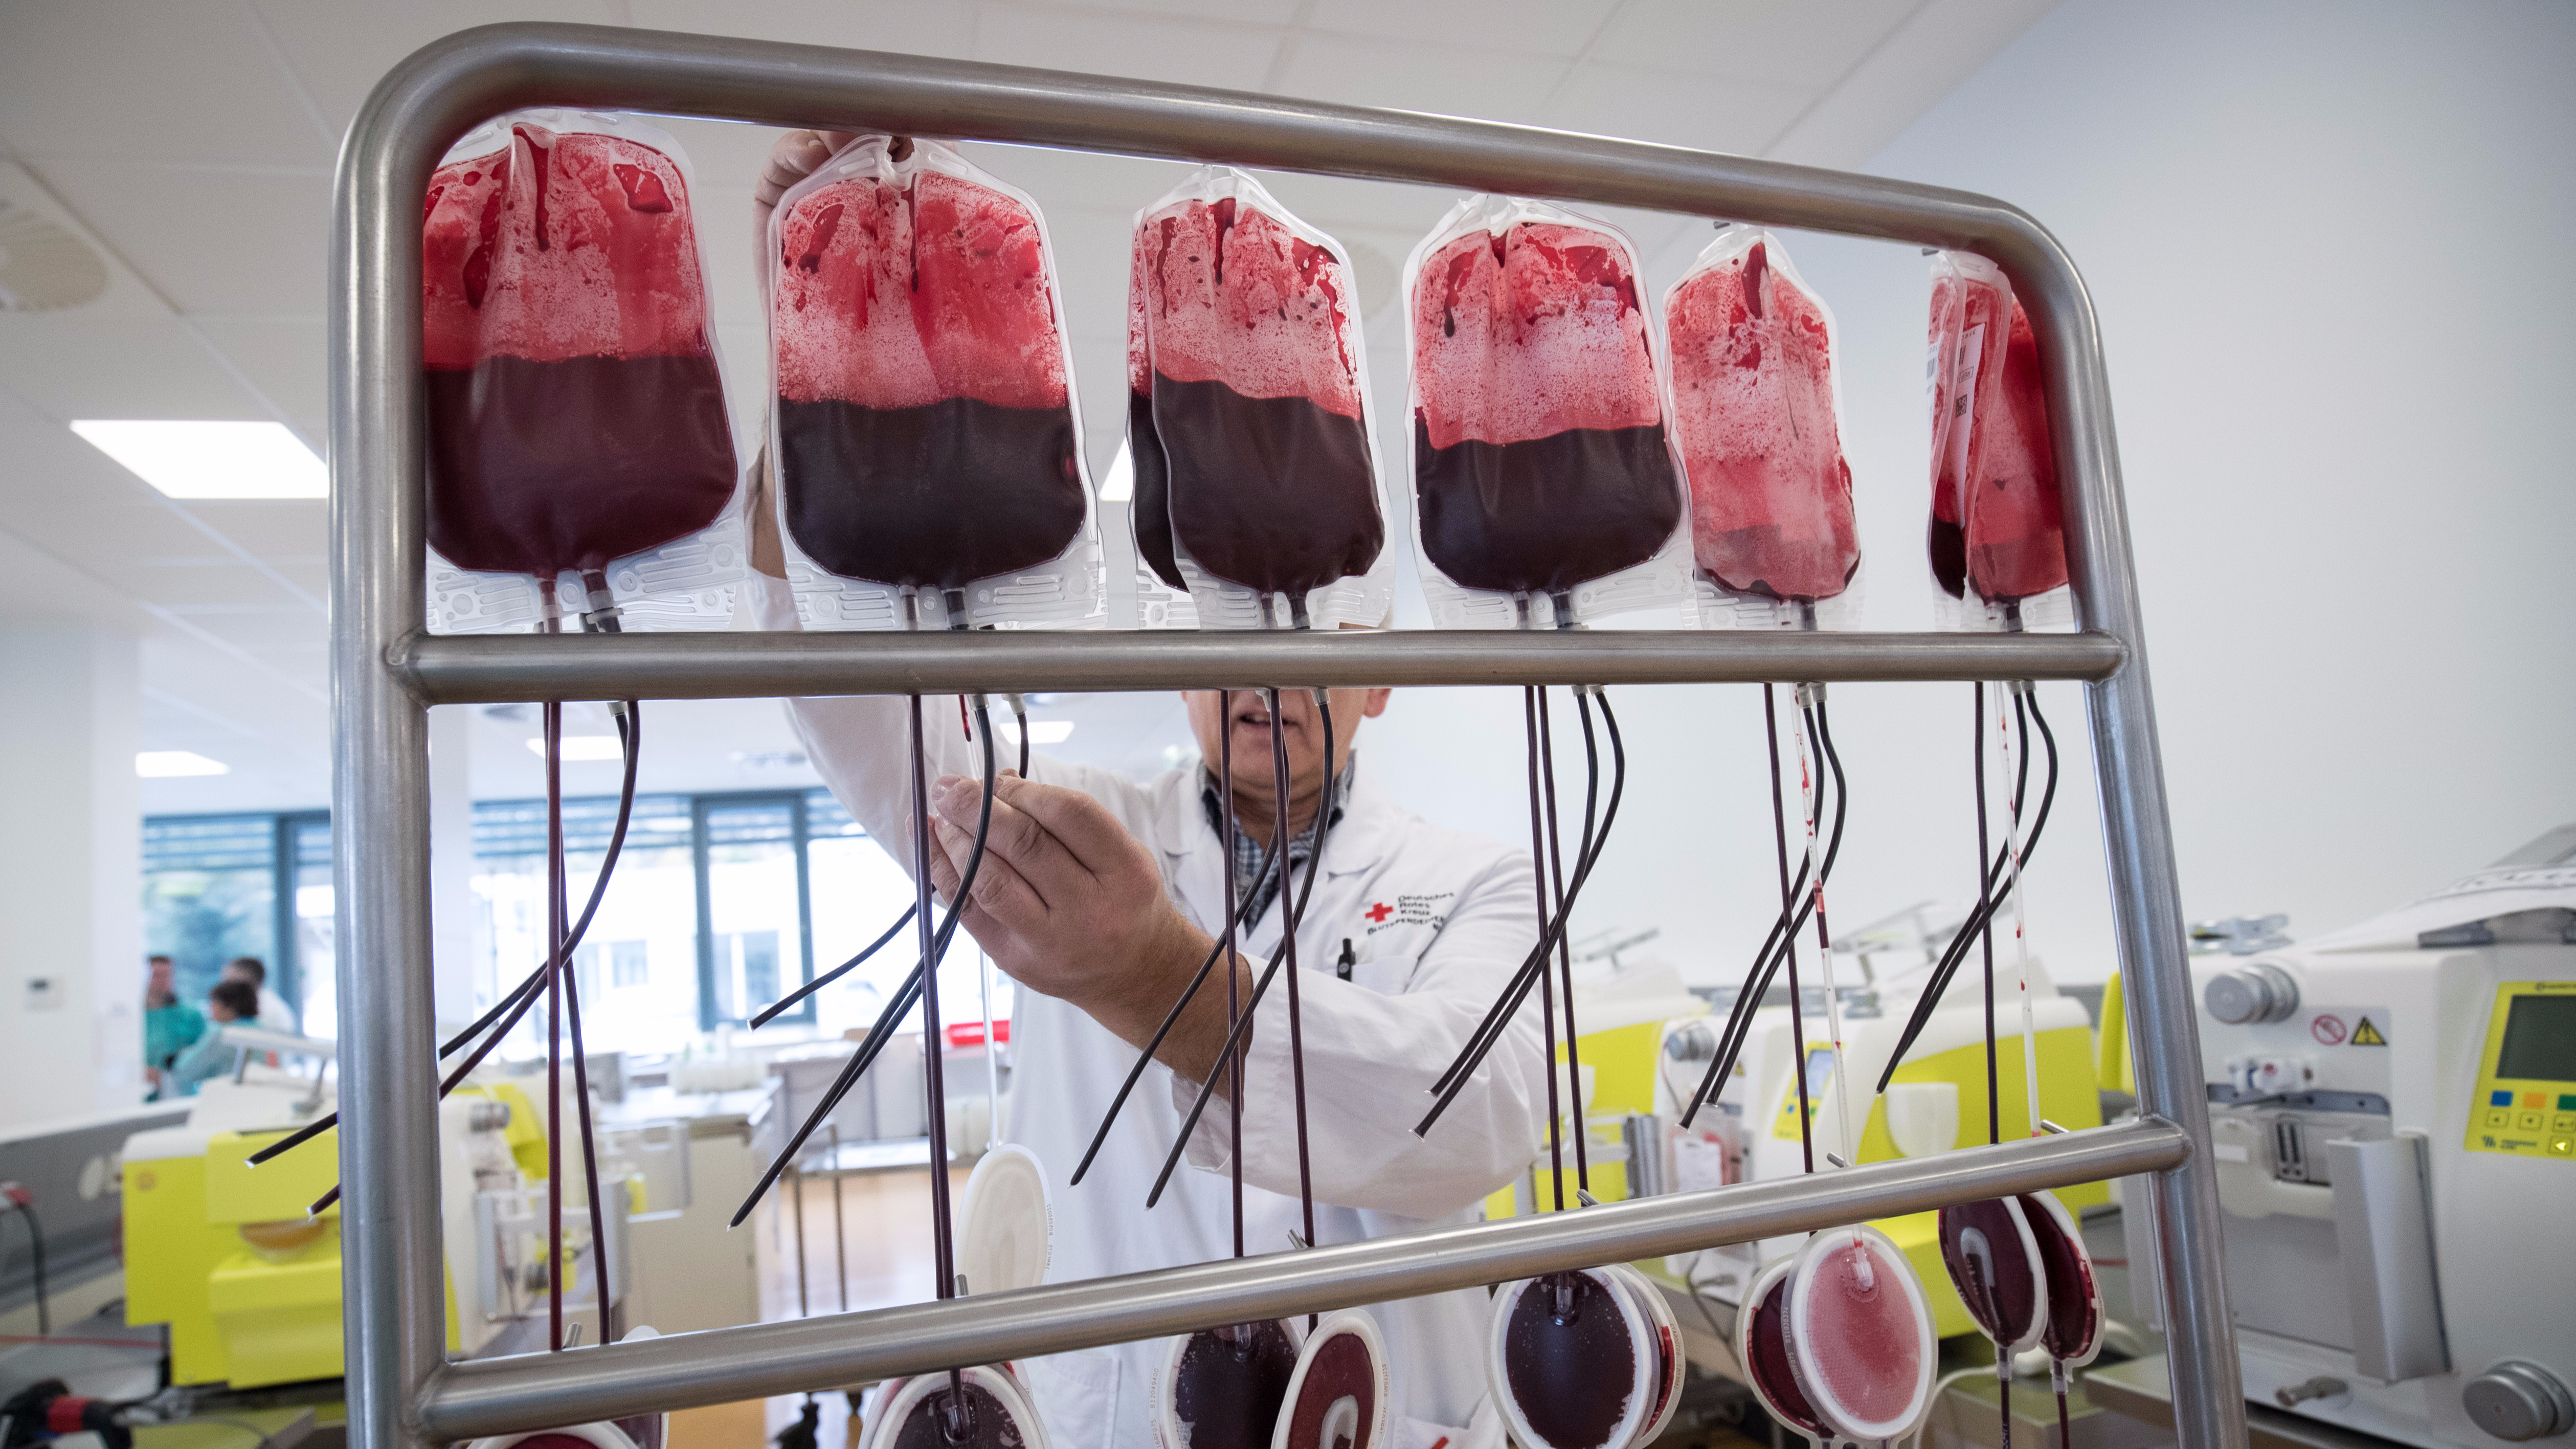 NHS Savagely Silences A Racist In One Simple Tweet About Blood Donation